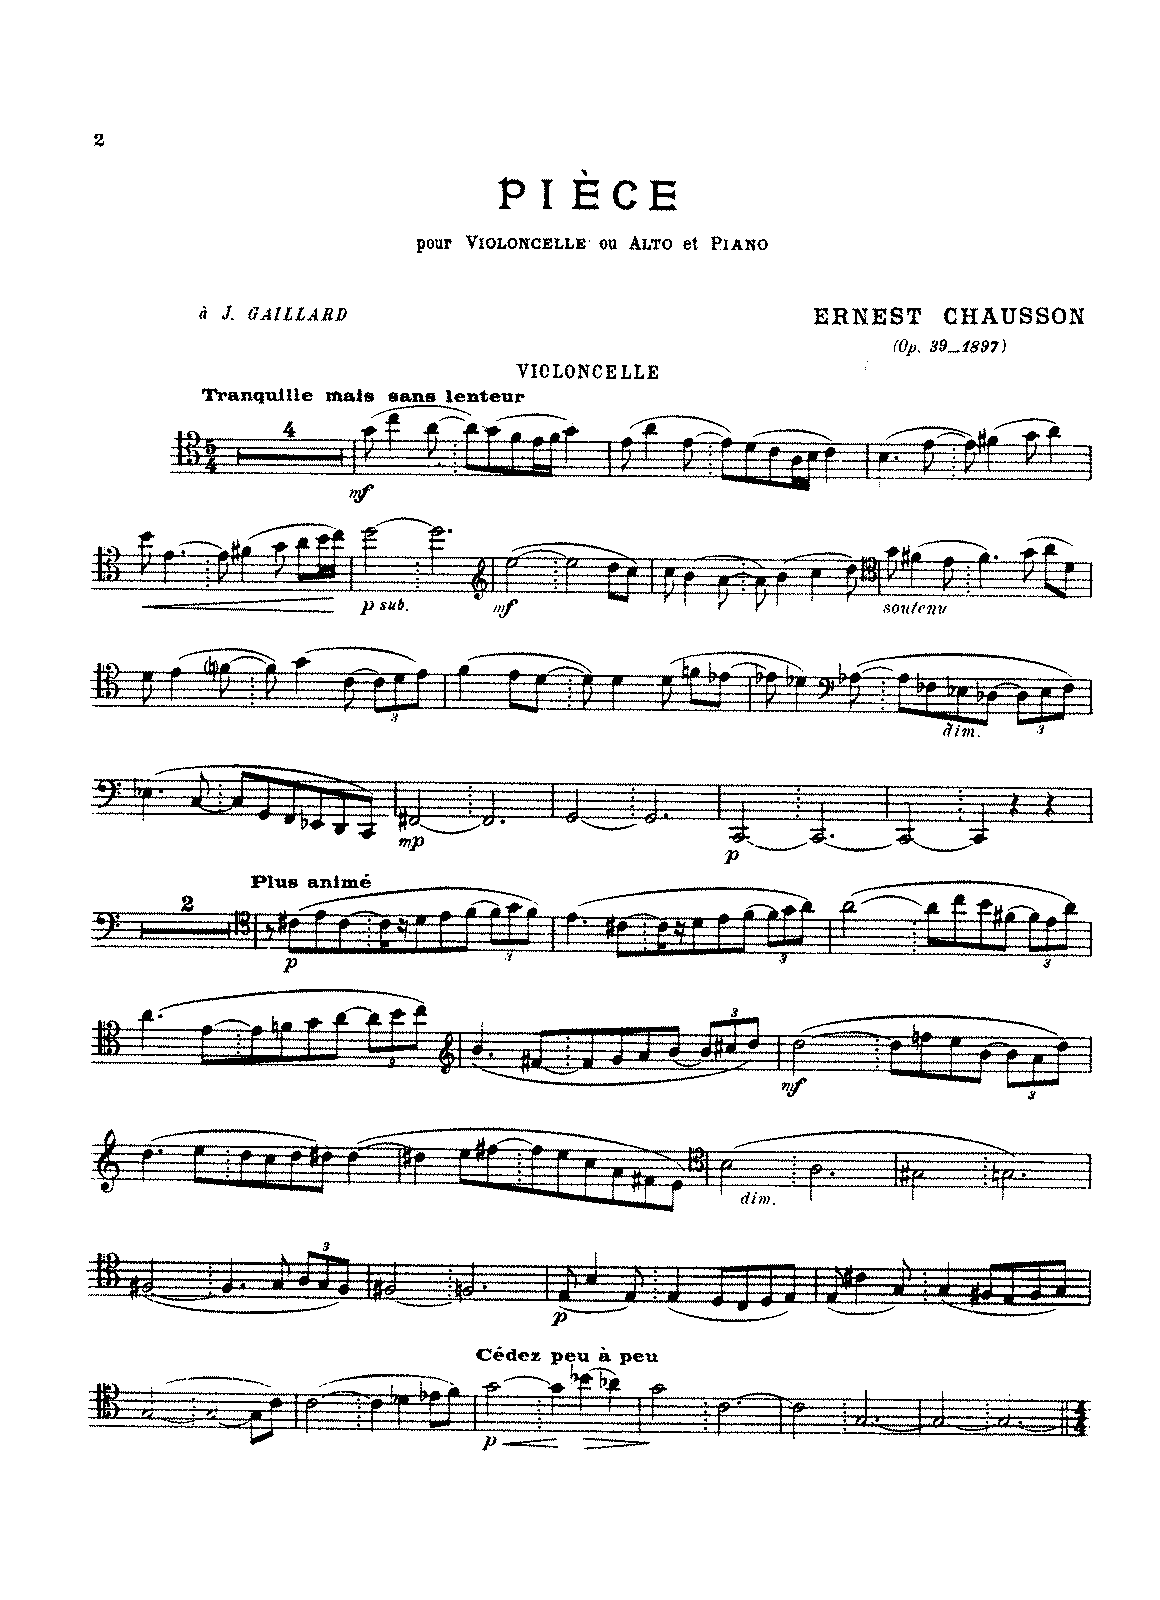 PMLP60170-Chausson - Pièce, Op. 39 (cello and piano).pdf